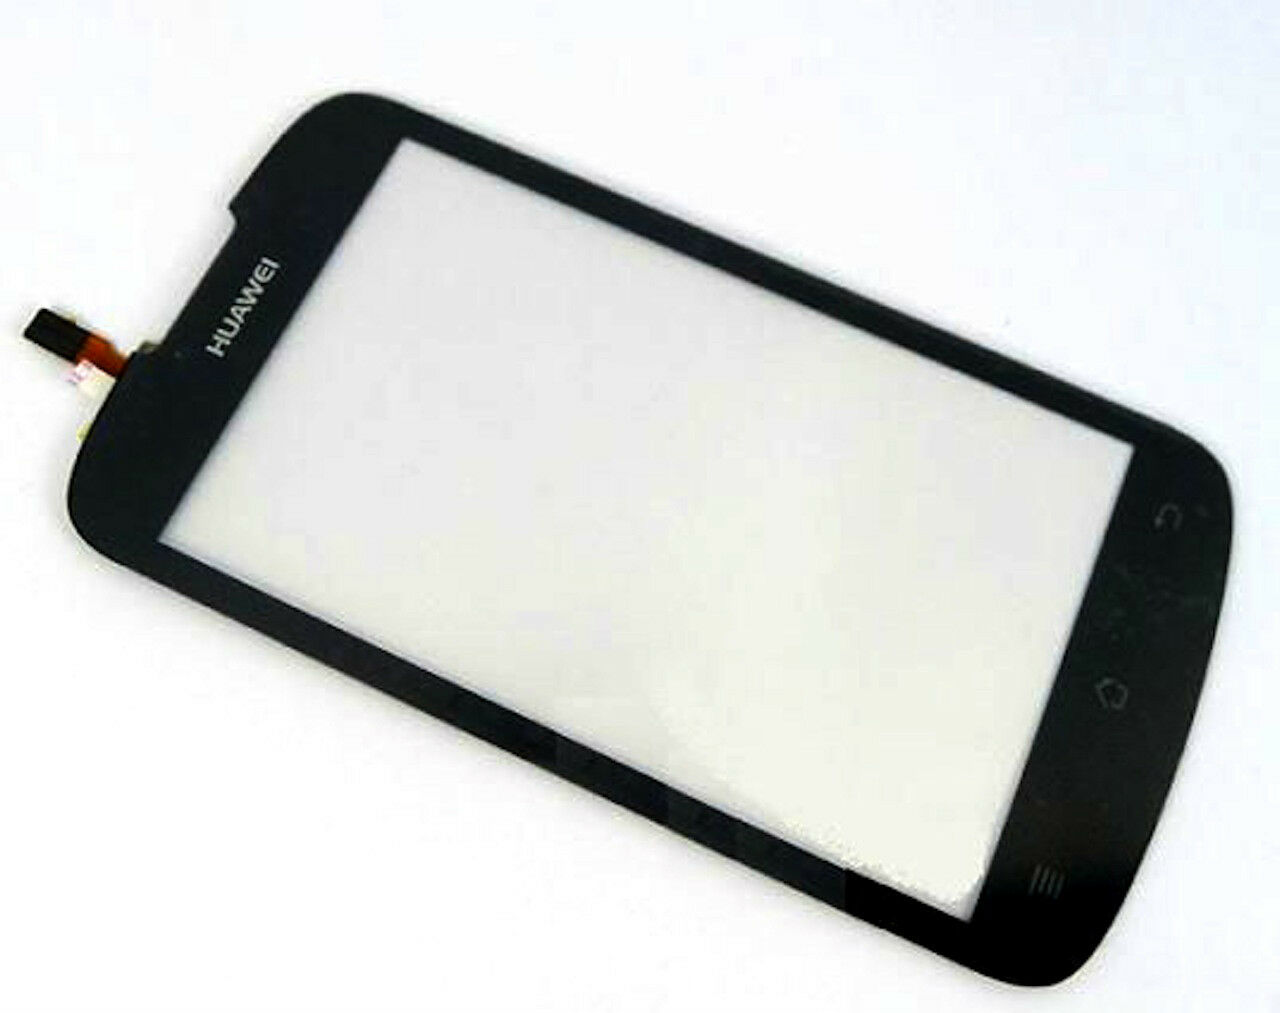 Kit VETRO + TOUCH SCREEN per HUAWEI ASCEND G300 PER LCD DISPLAY Nuovo U8815